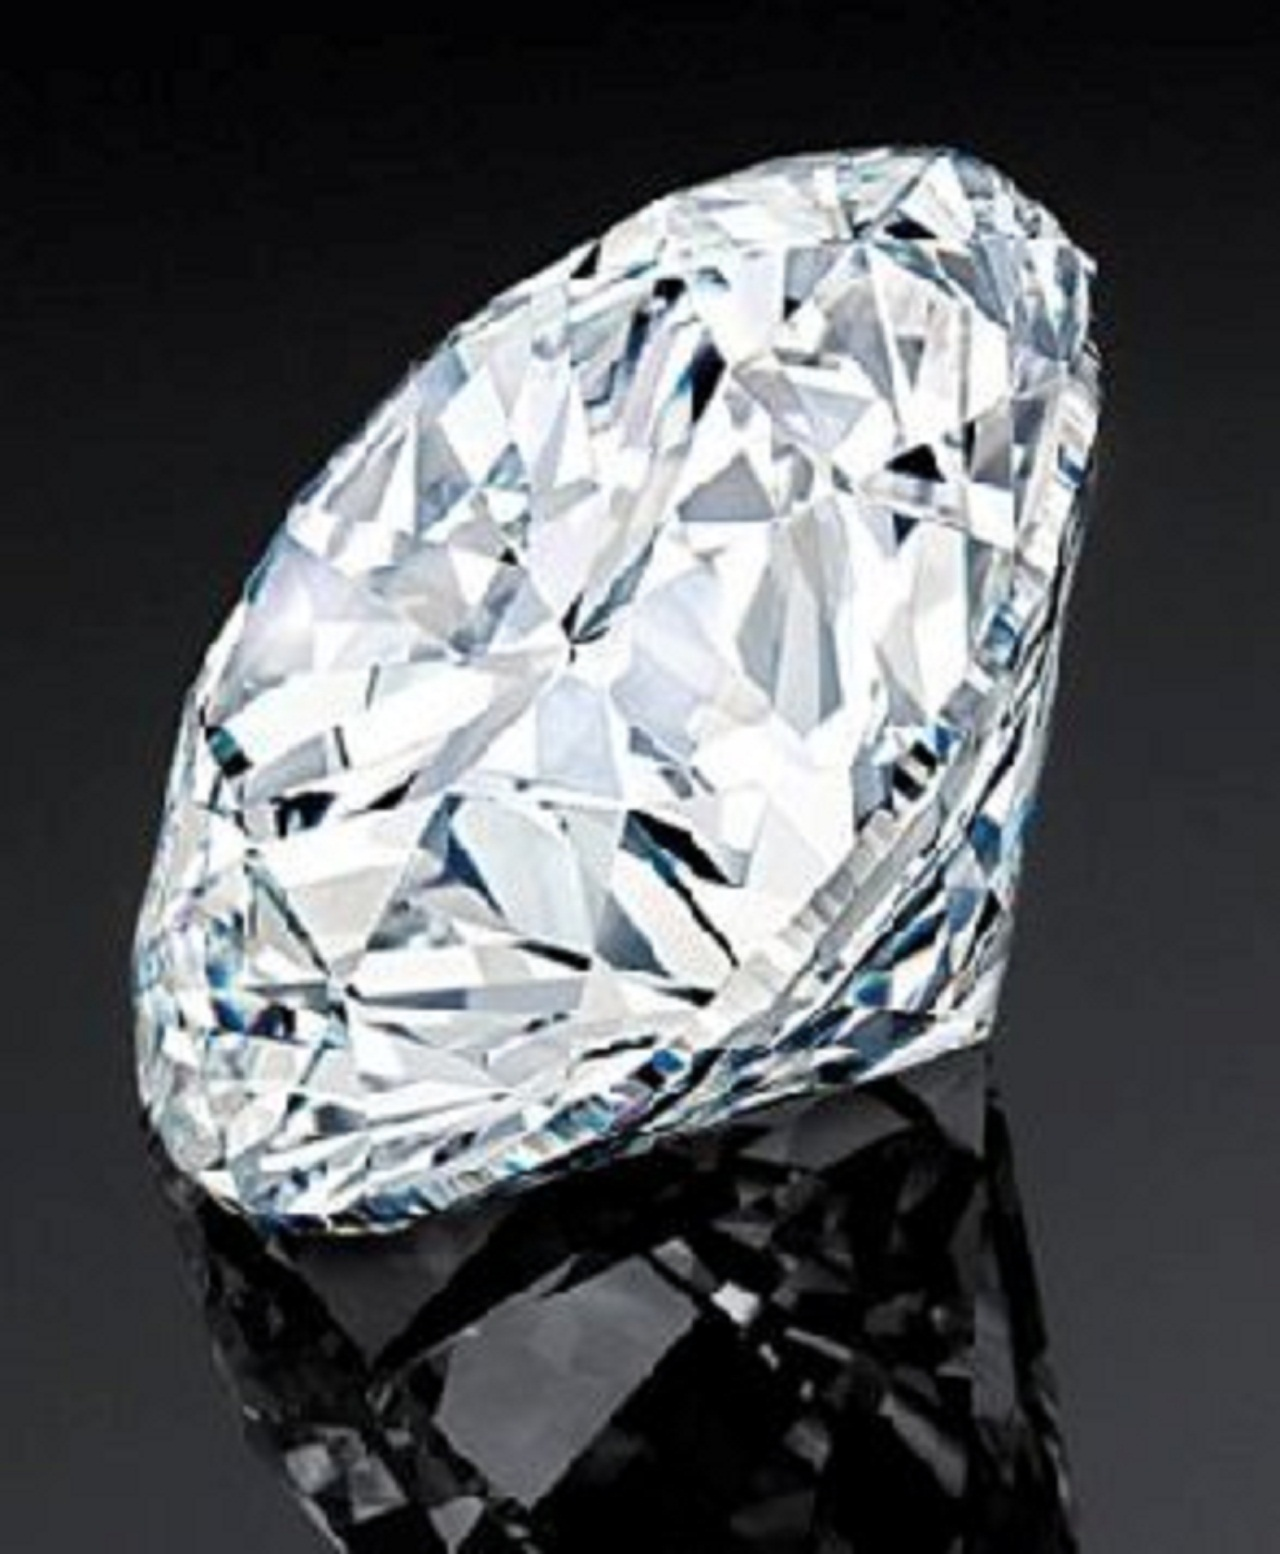 francisco diamond diamonds san are new earth the made lab mined in molecularly identical its grows to foundry real